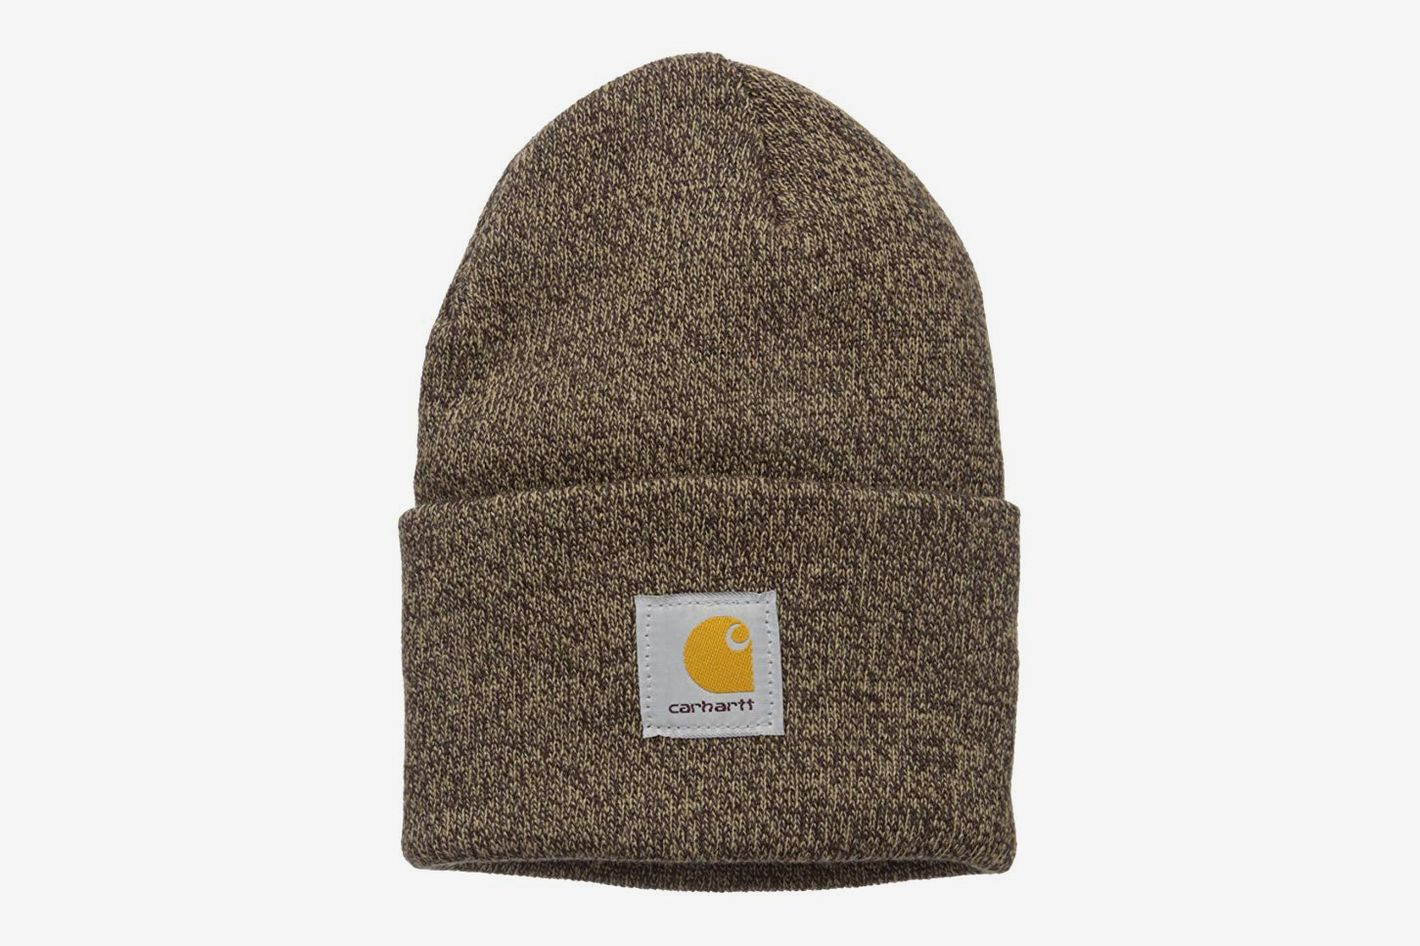 4bd3cf0859391 Carhartt Beanies Are Everywhere. Here s Why.